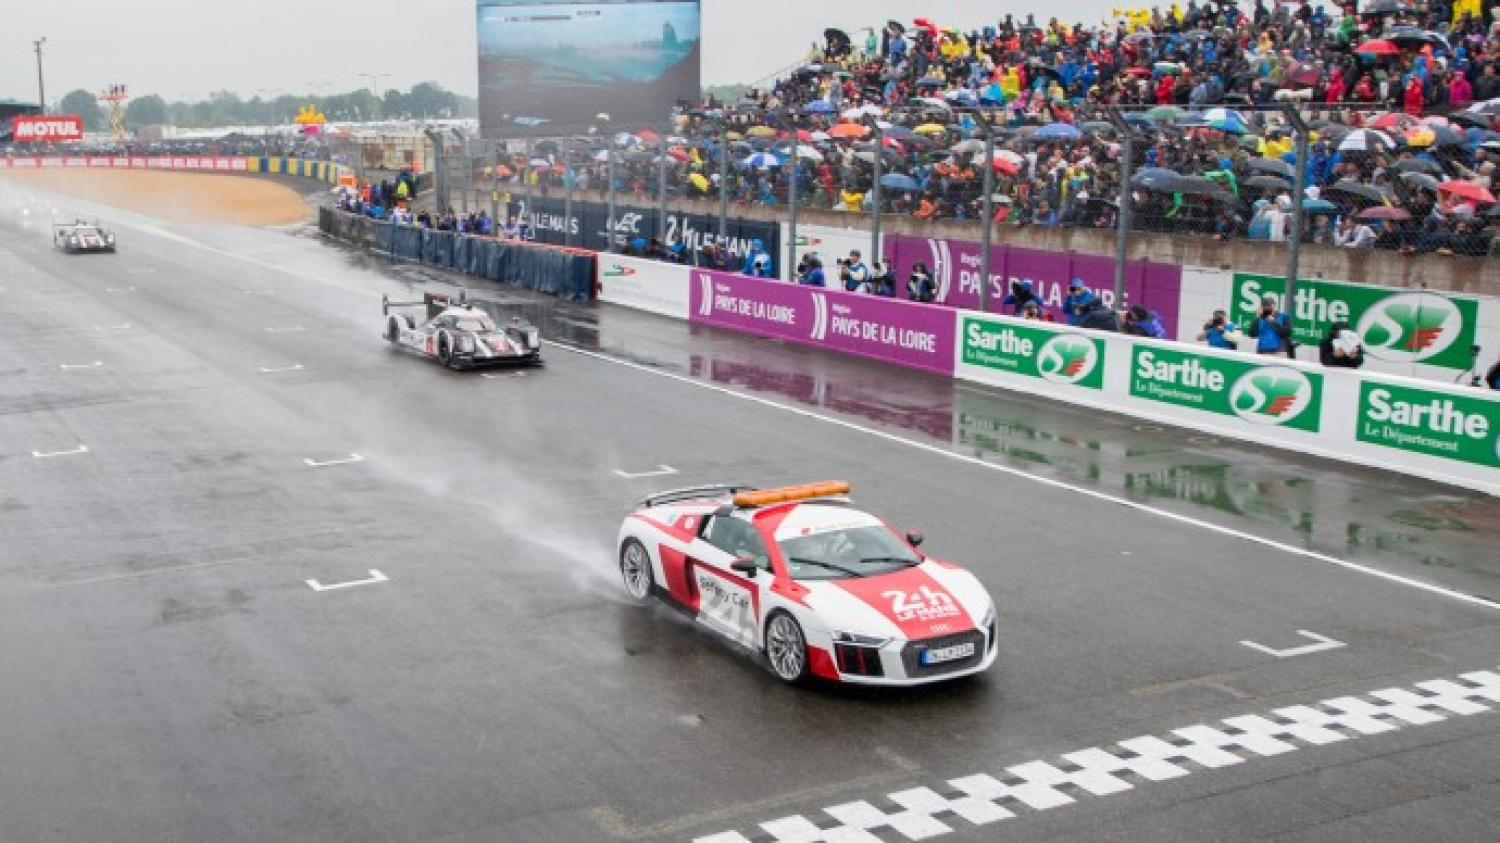 First hour - Toyota moves into the lead after wet start